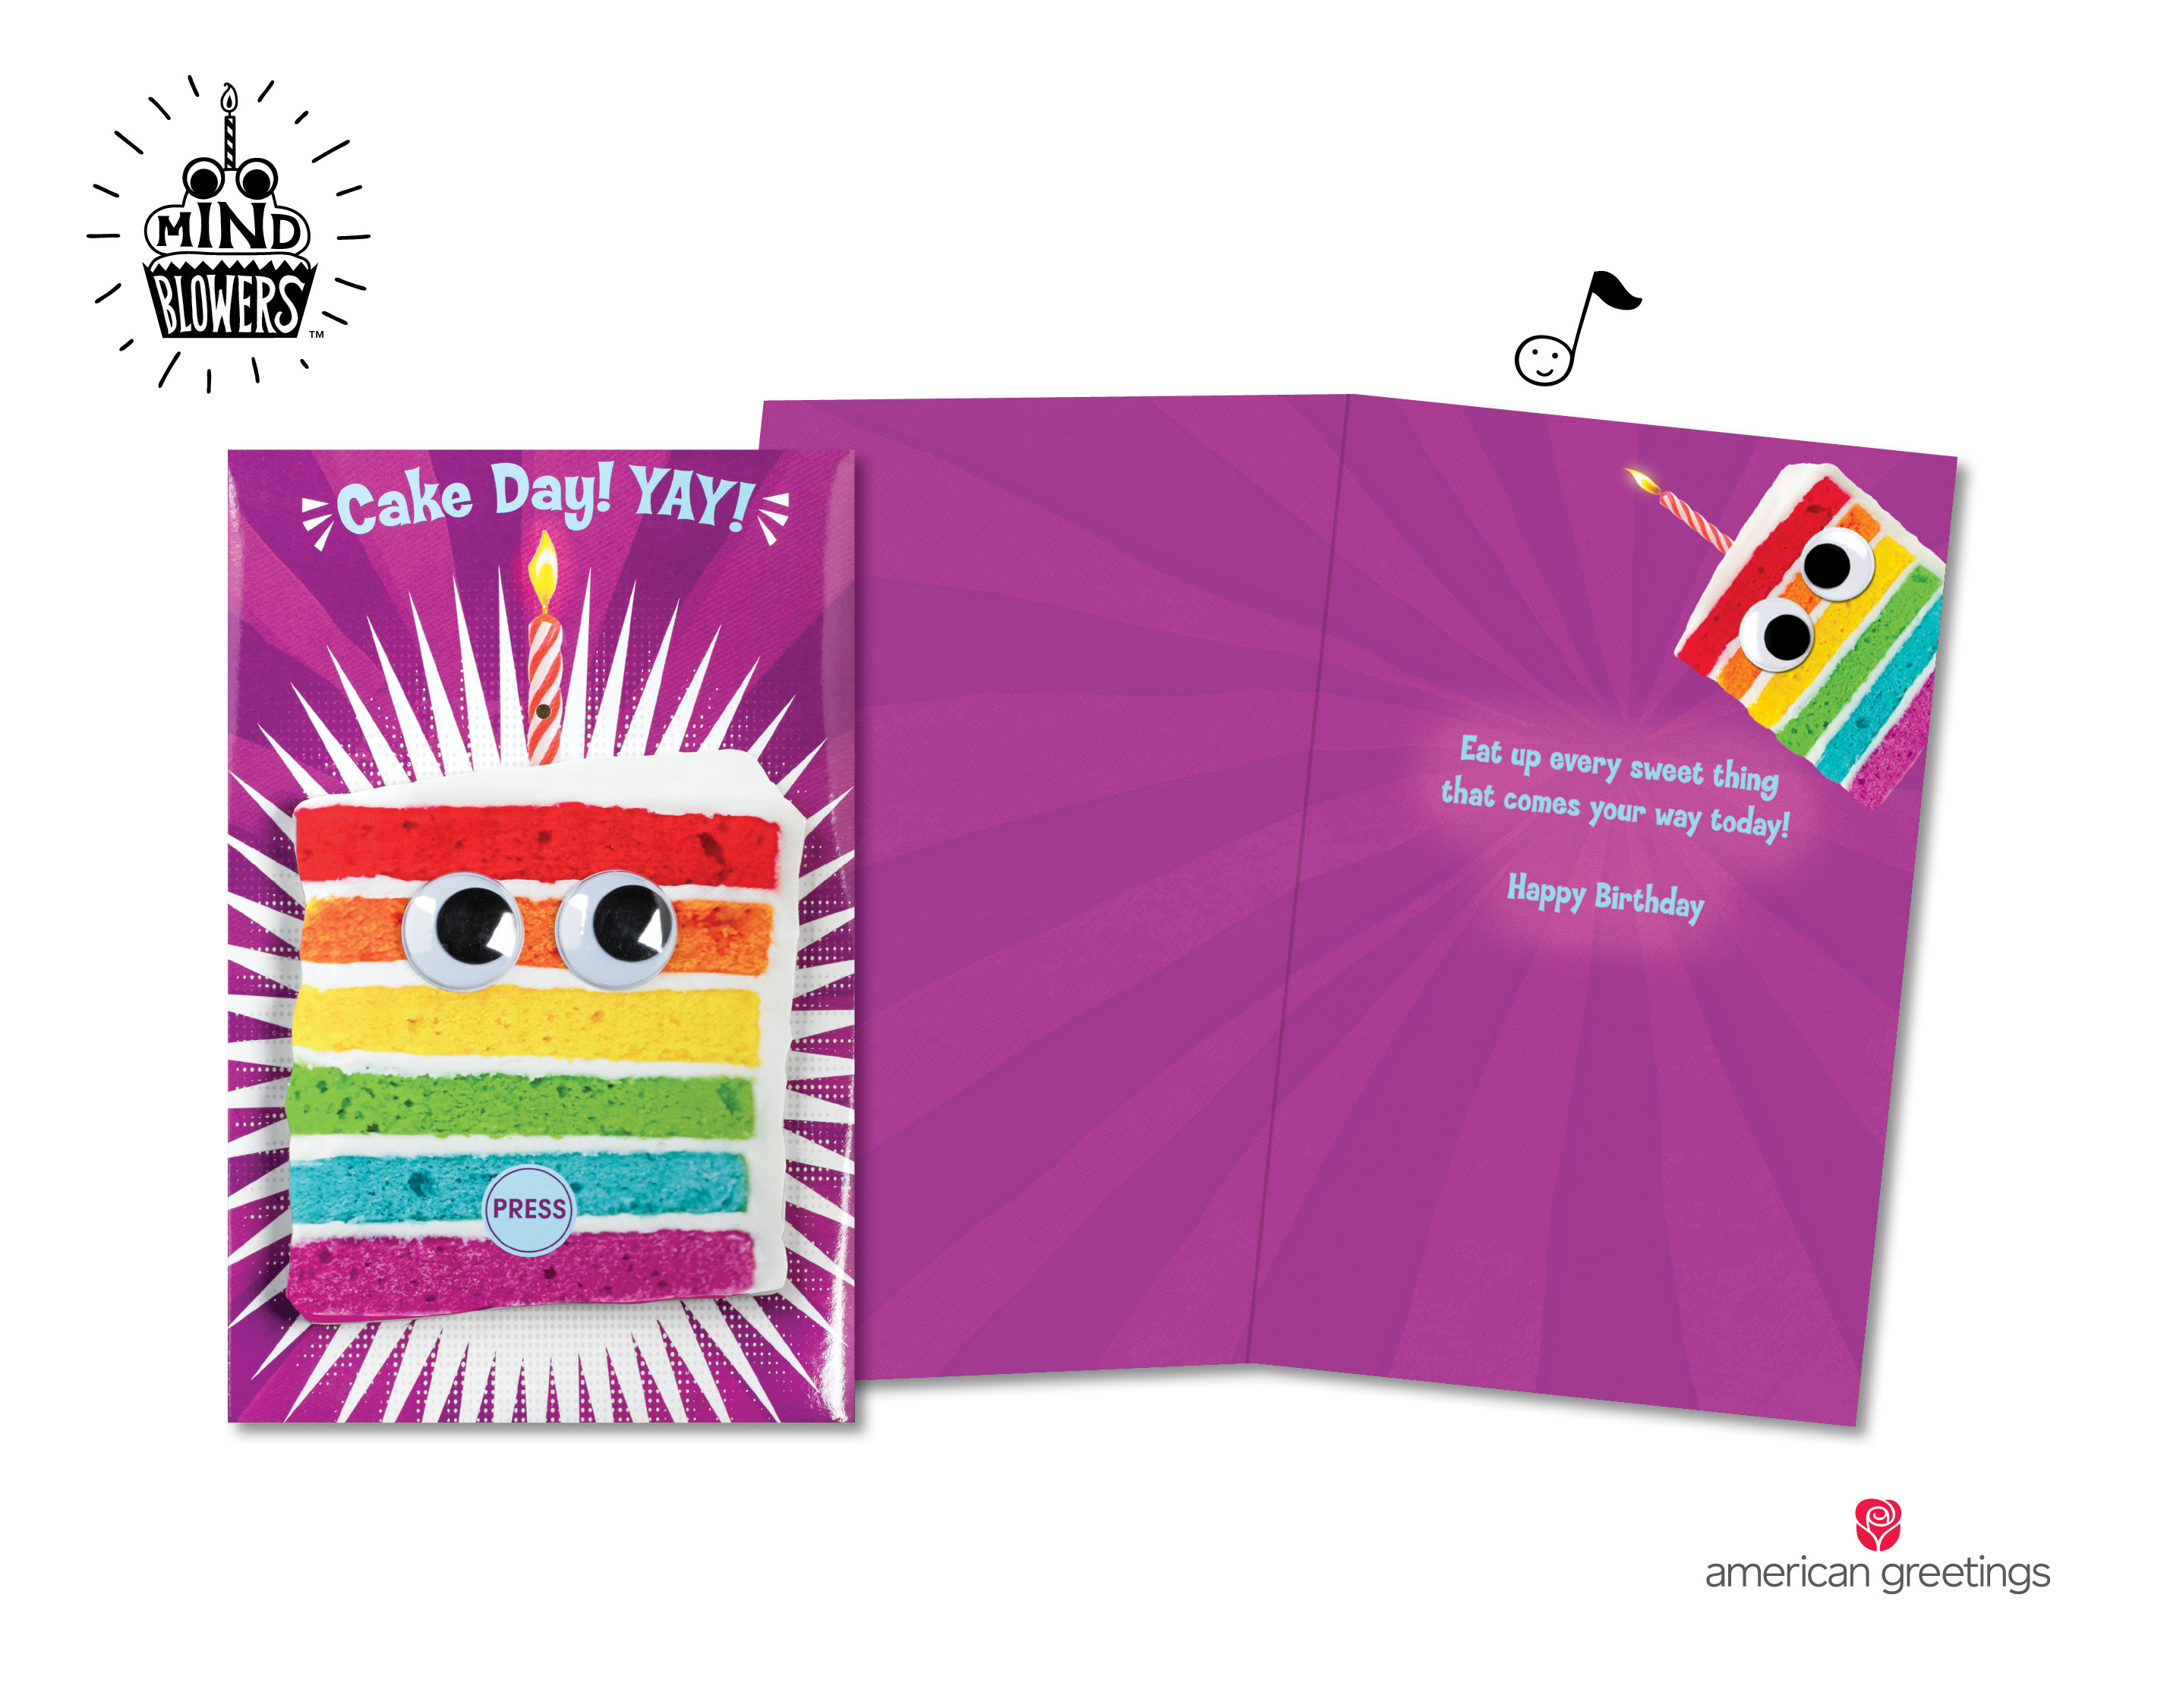 New Mind BlowersTM Birthday Cards From American Greetings Bring